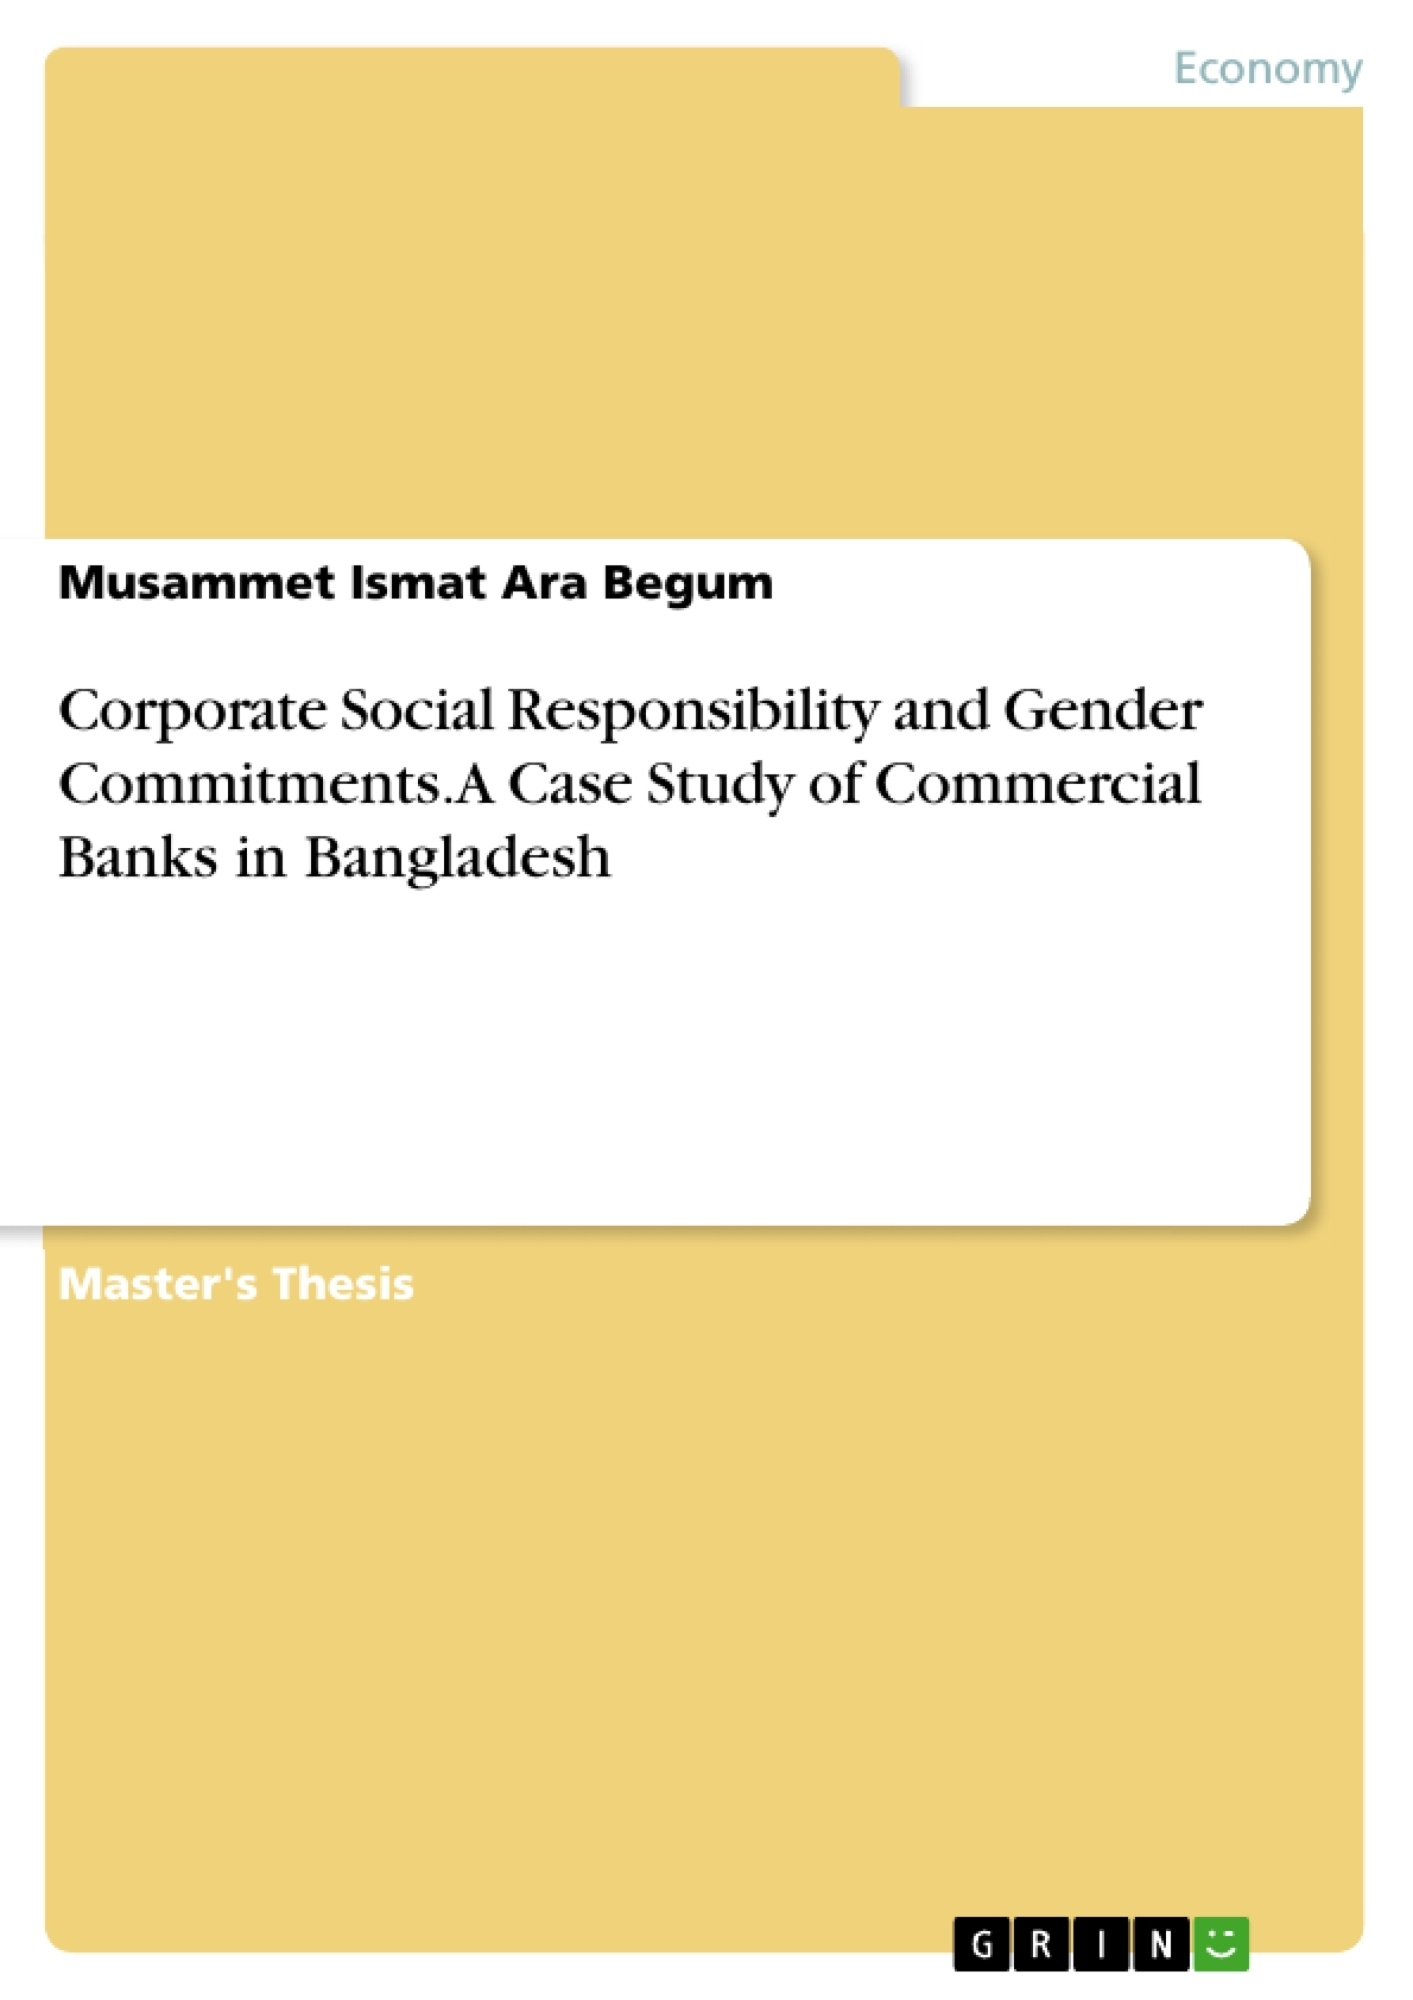 Title: Corporate Social Responsibility and Gender Commitments. A Case Study of Commercial Banks in Bangladesh